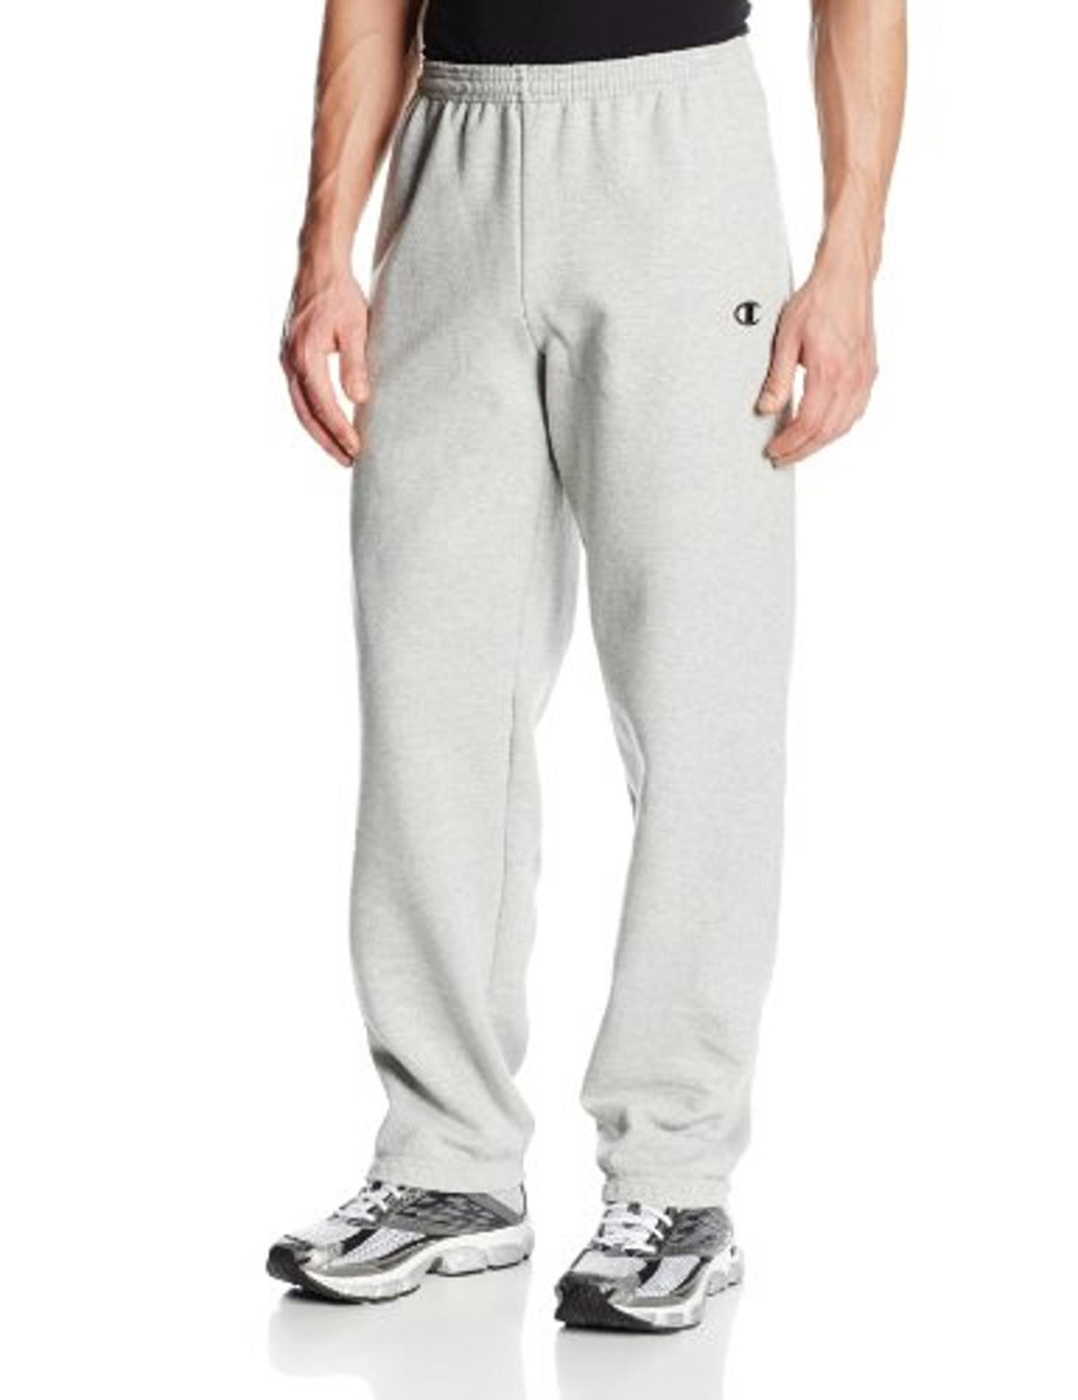 Champion Men's Elastic Hem Eco Fleece Sweatpant - Small - Oxford Grey - 70084 - Basketball Basketballs Balls Color Rubber Basketballs 70084